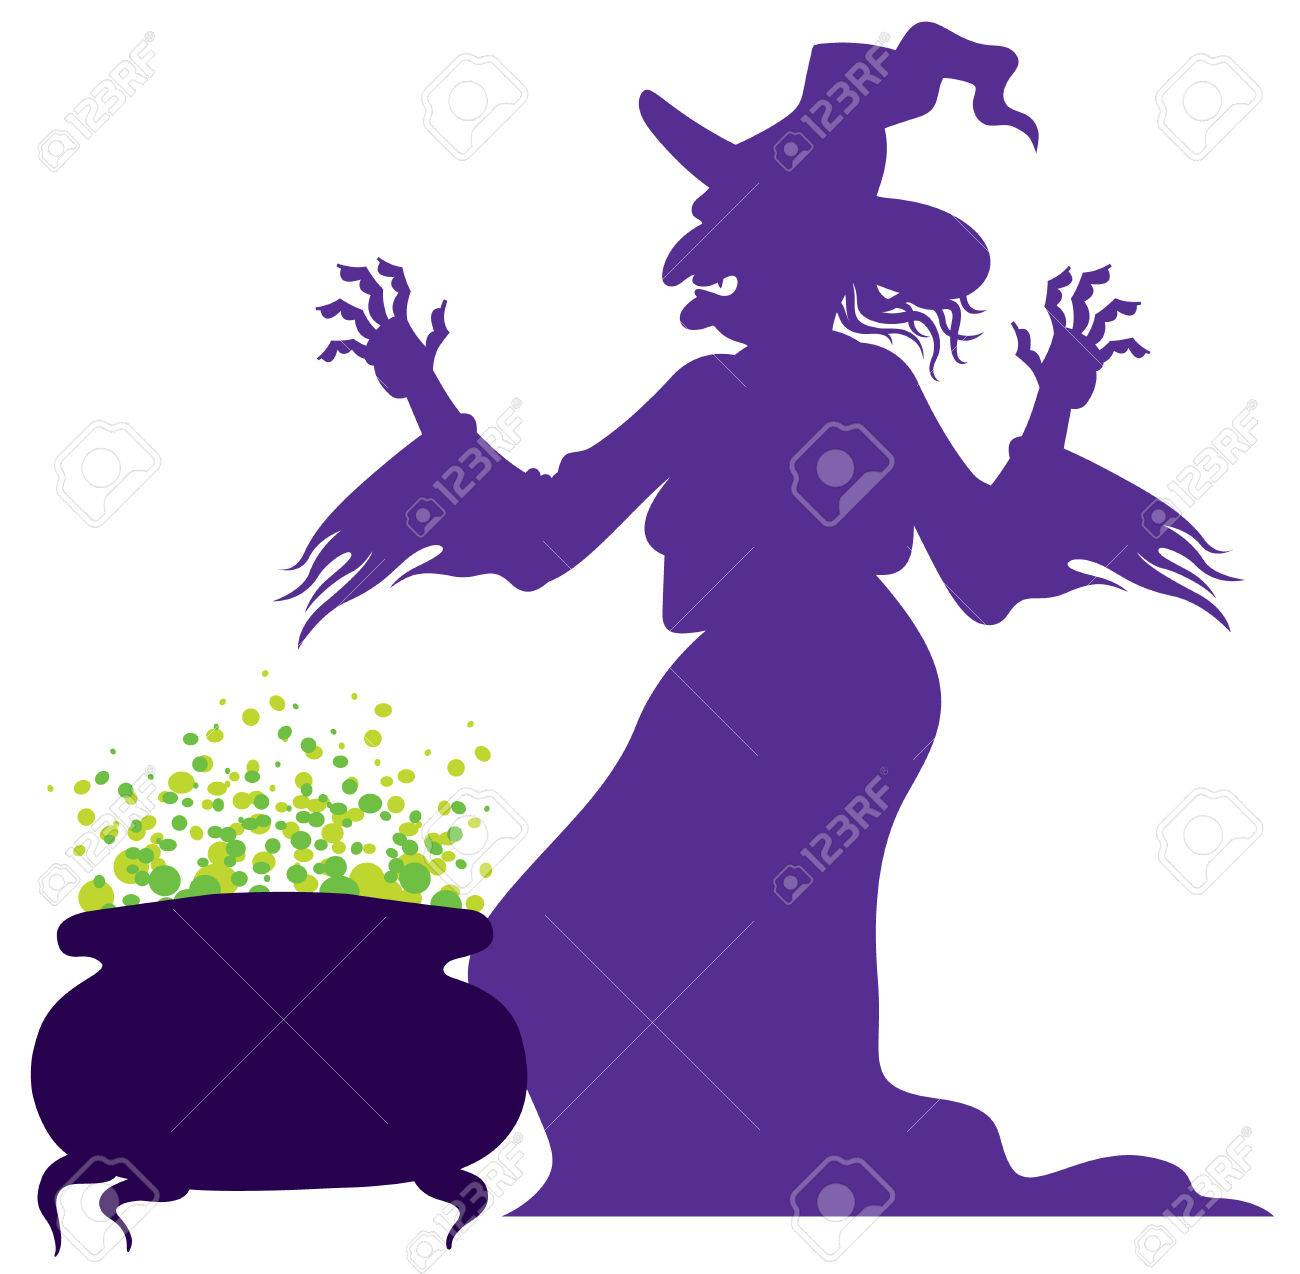 silhouette of the old scary witch with magic cauldron - 51389011